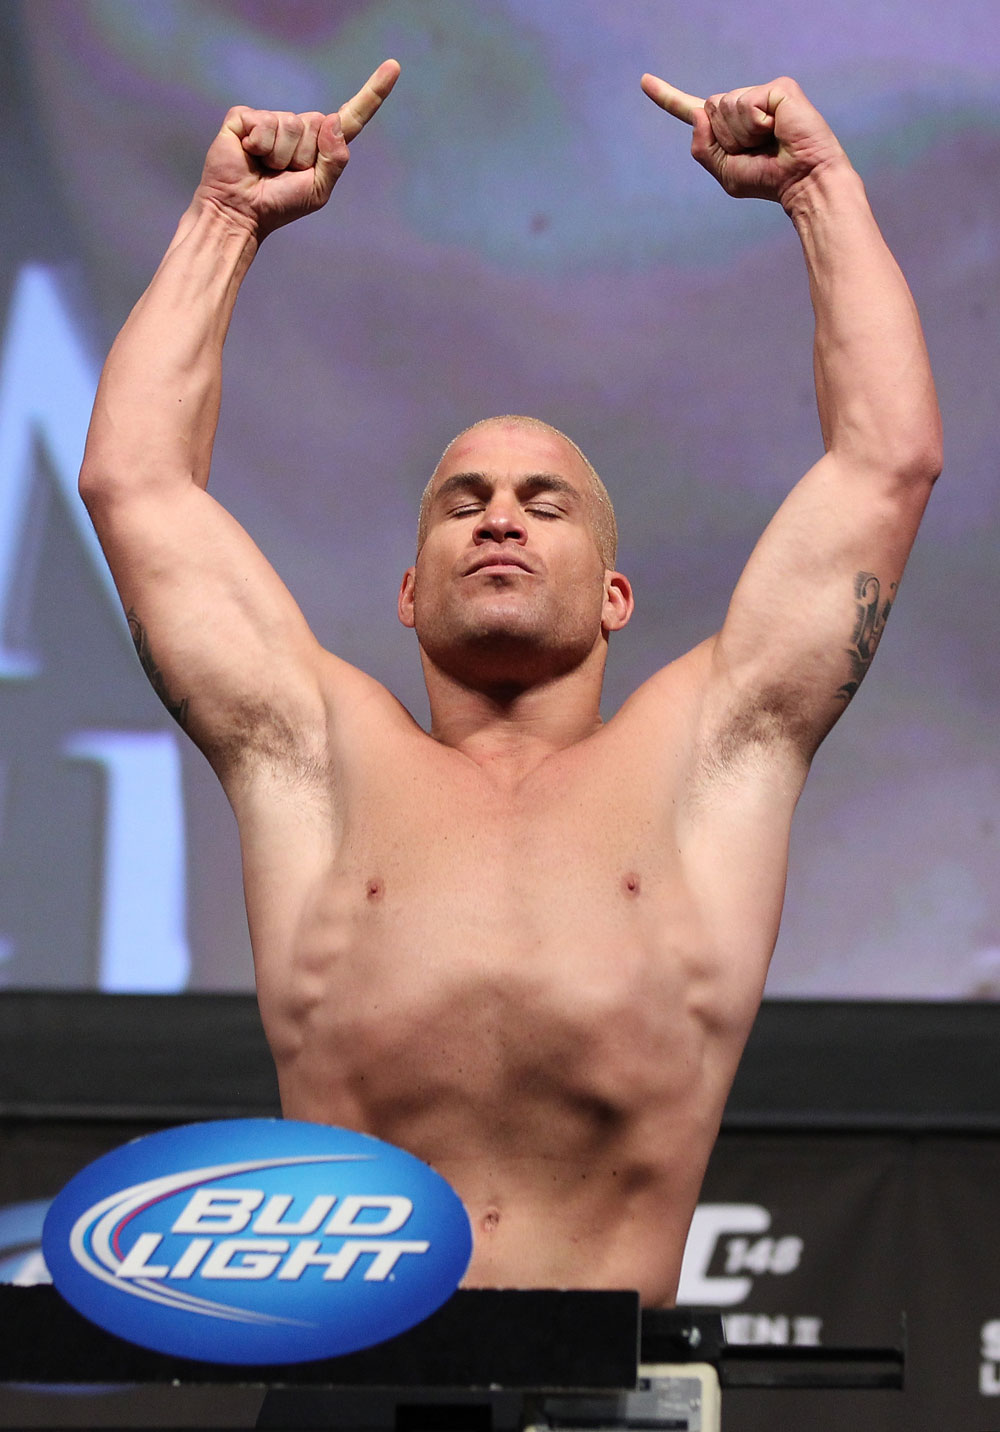 LAS VEGAS, NV - JULY 6:   Tito Ortiz makes weight during the UFC 148 Weigh In at the Mandalay Bay Events Center on July 6, 2012 in Las Vegas, Nevada.  (Photo by Josh Hedges/Zuffa LLC/Zuffa LLC via Getty Images)